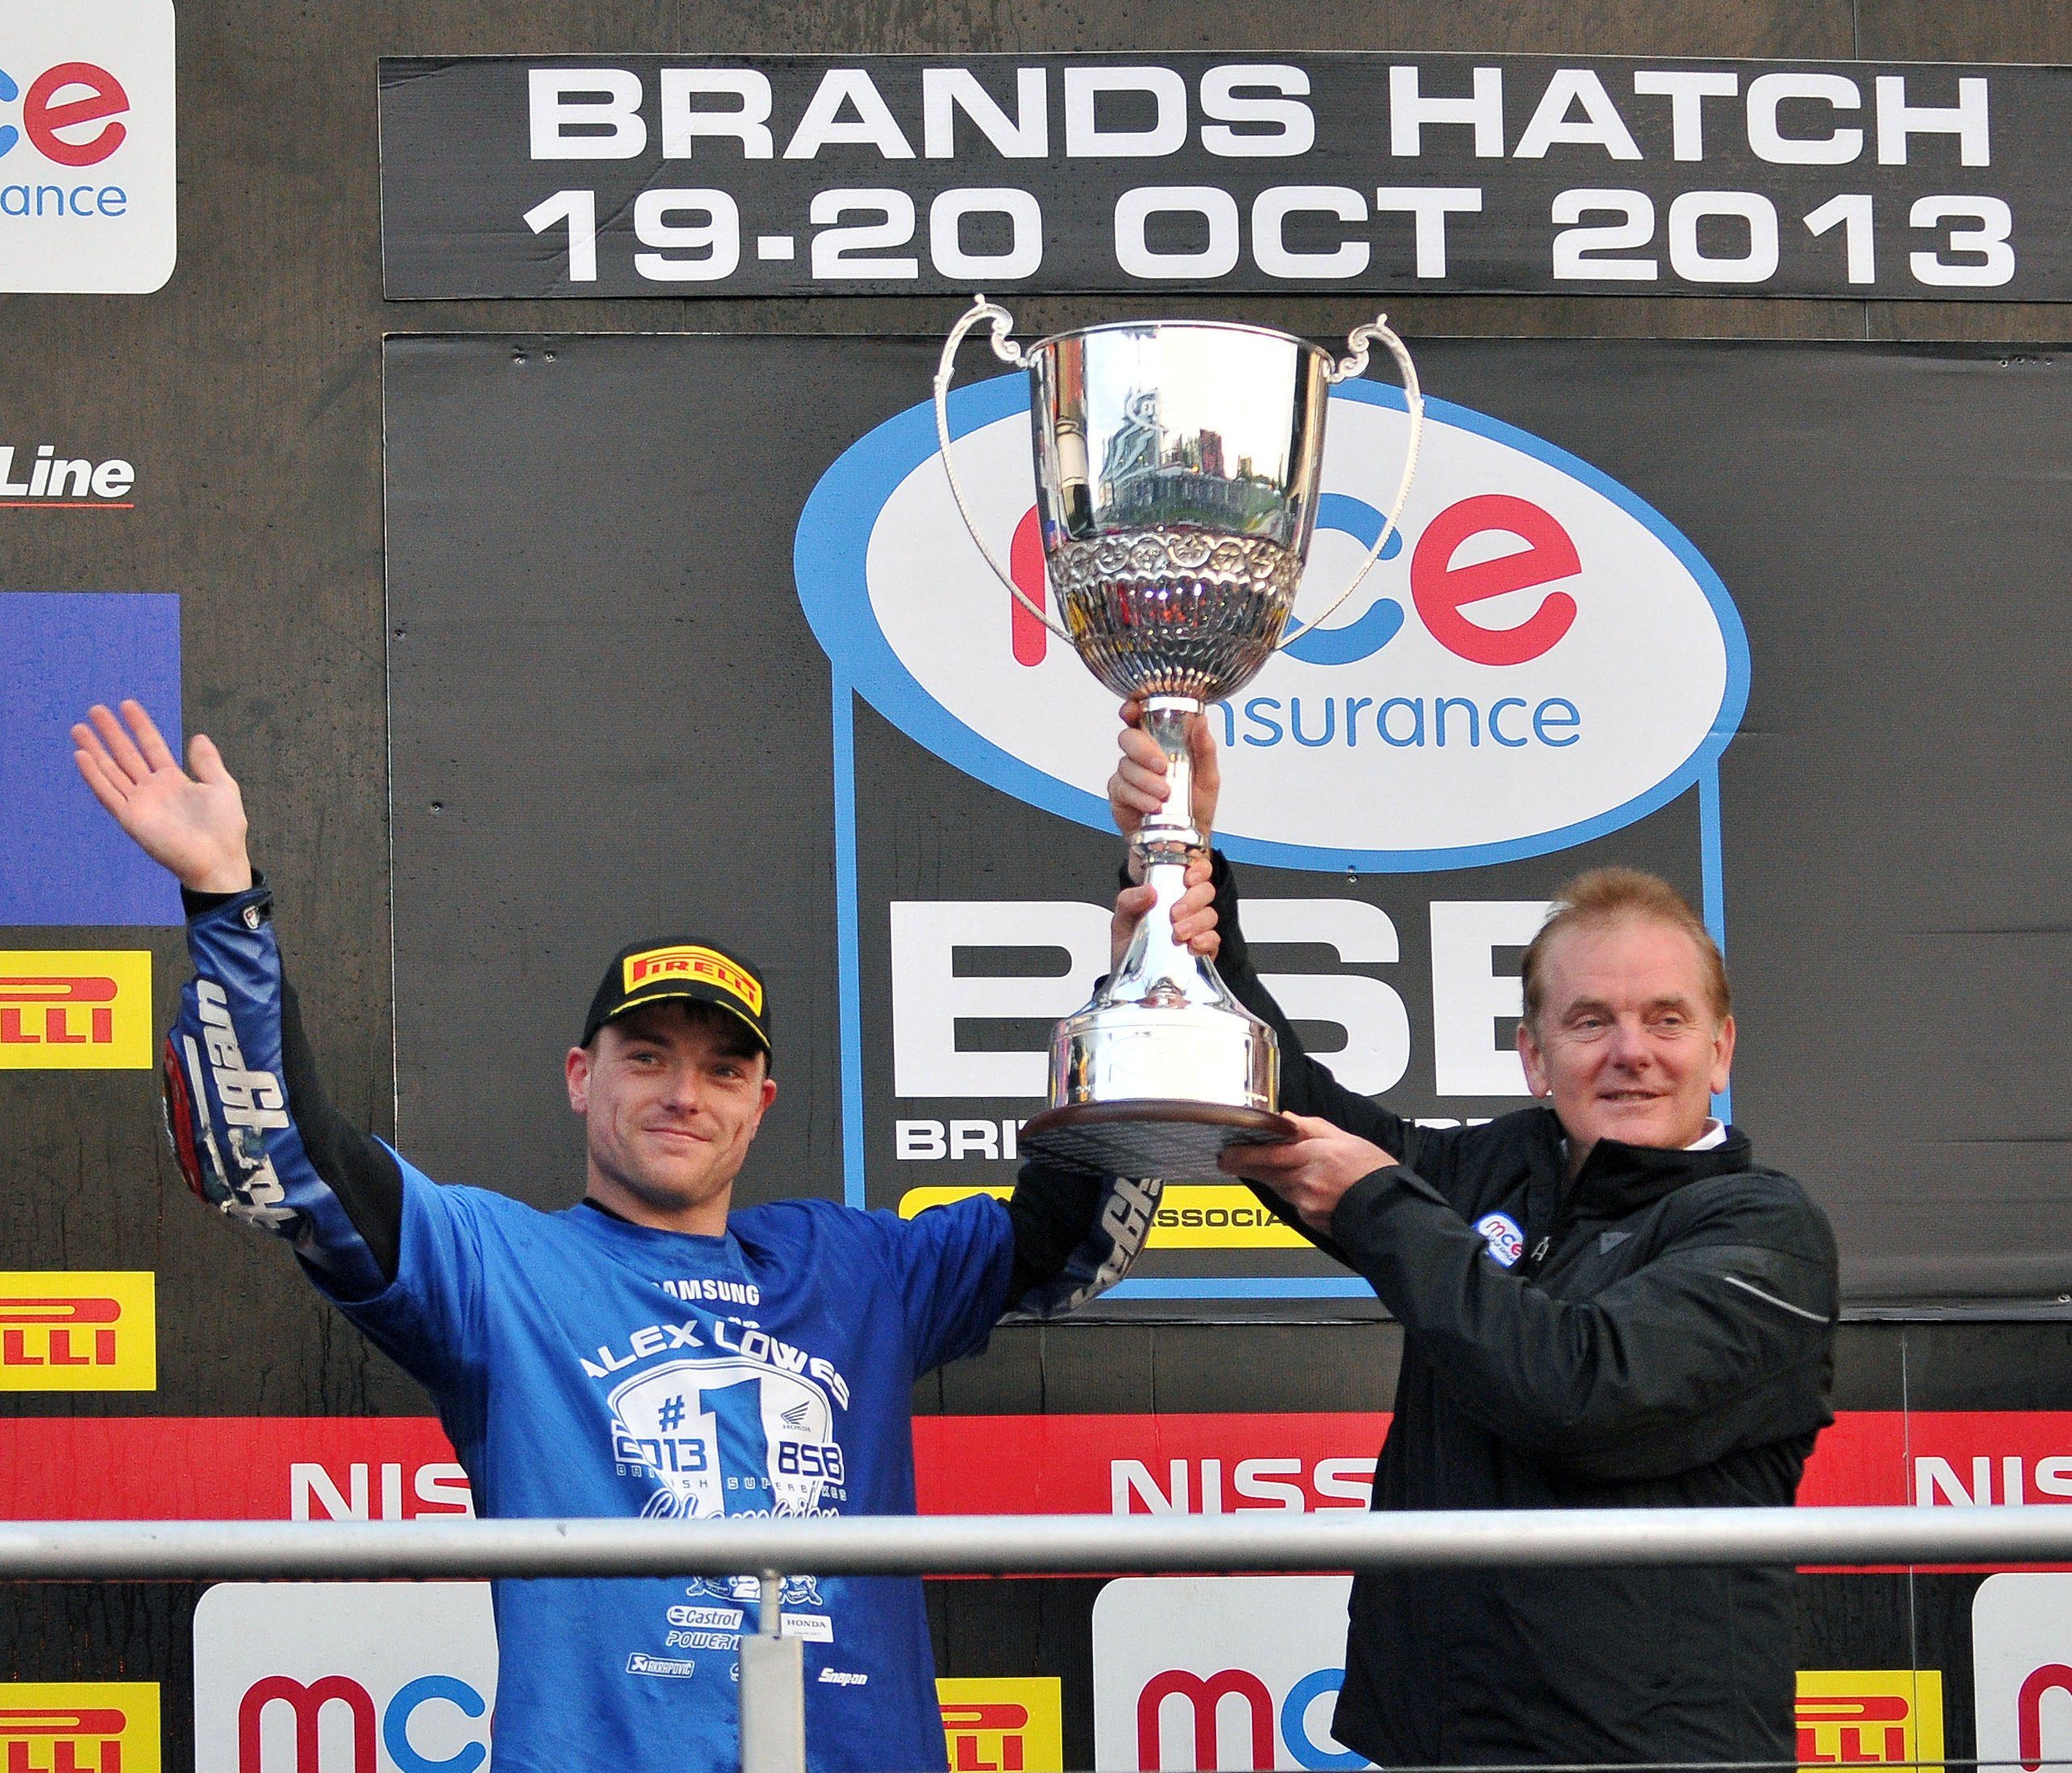 BSB 2013: Final championship standings